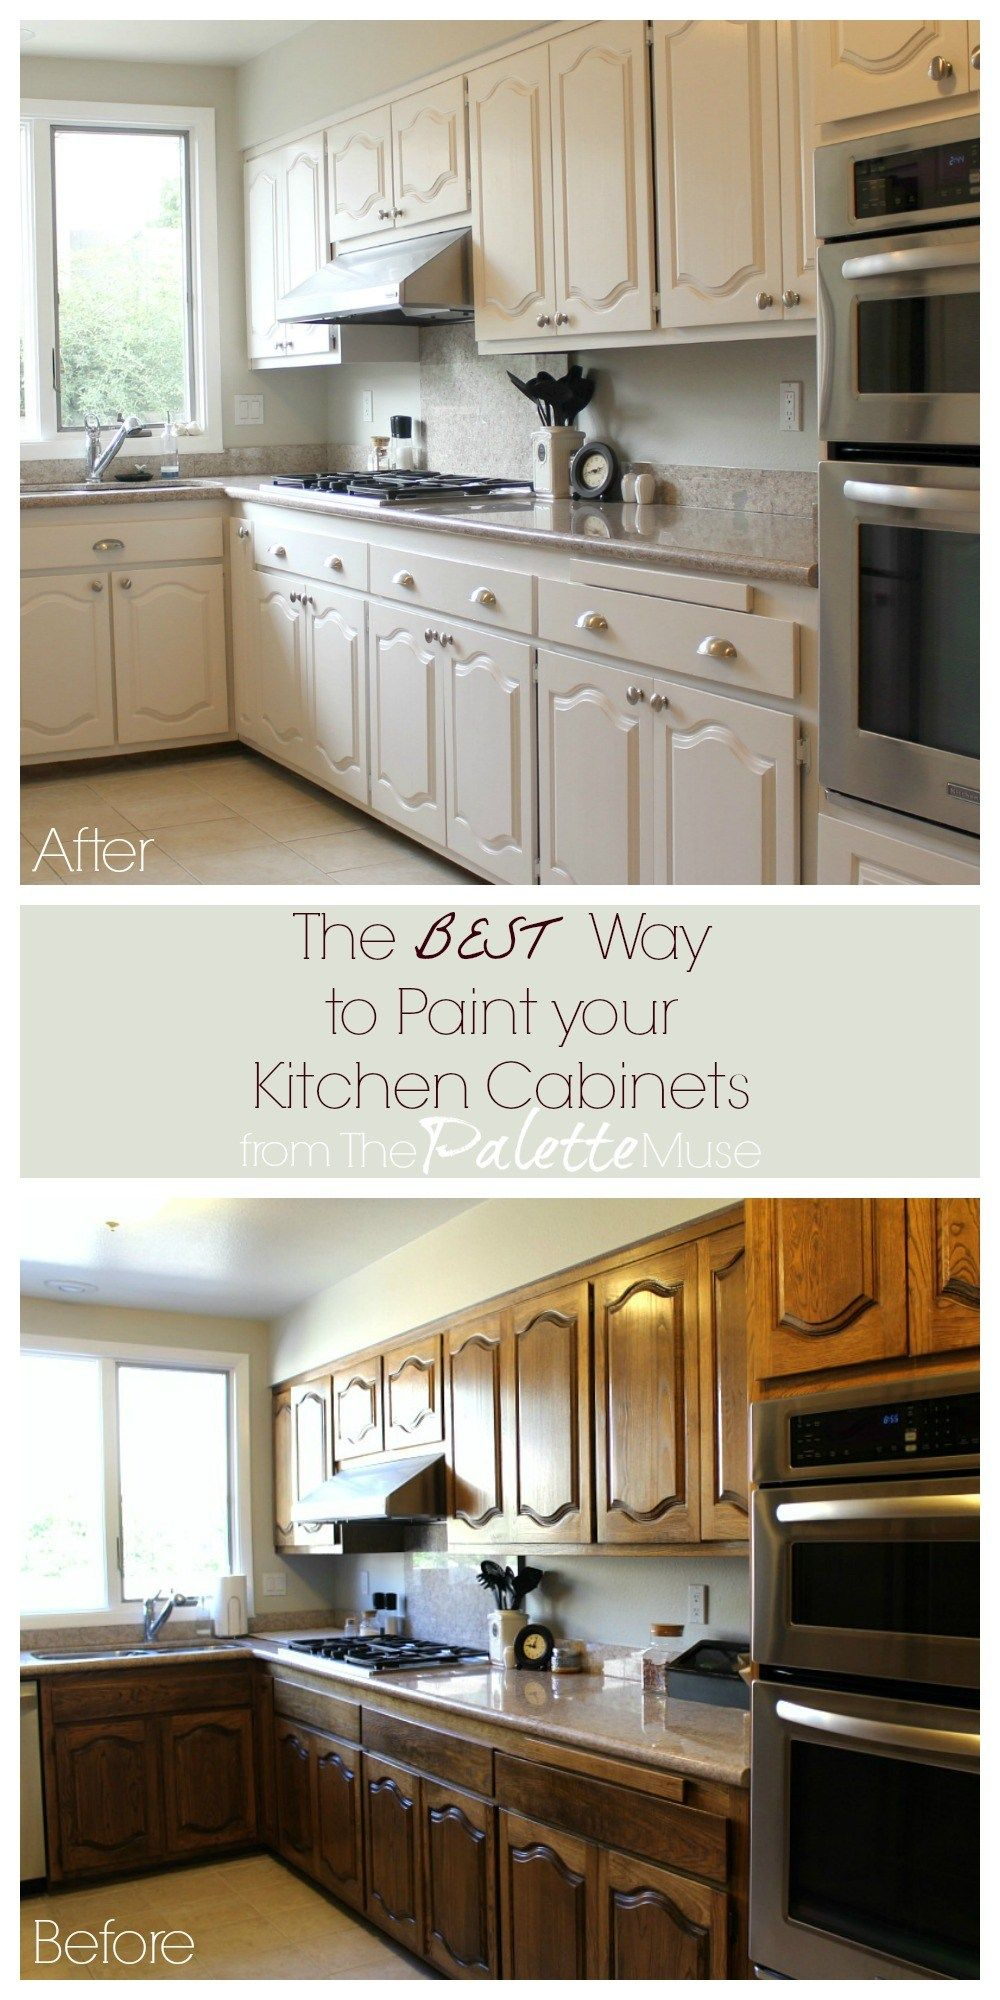 The Best Way To Paint Kitchen Cabinets No Sanding Diy Kitchen Cabinets Painting Painting Kitchen Cabinets New Kitchen Cabinets